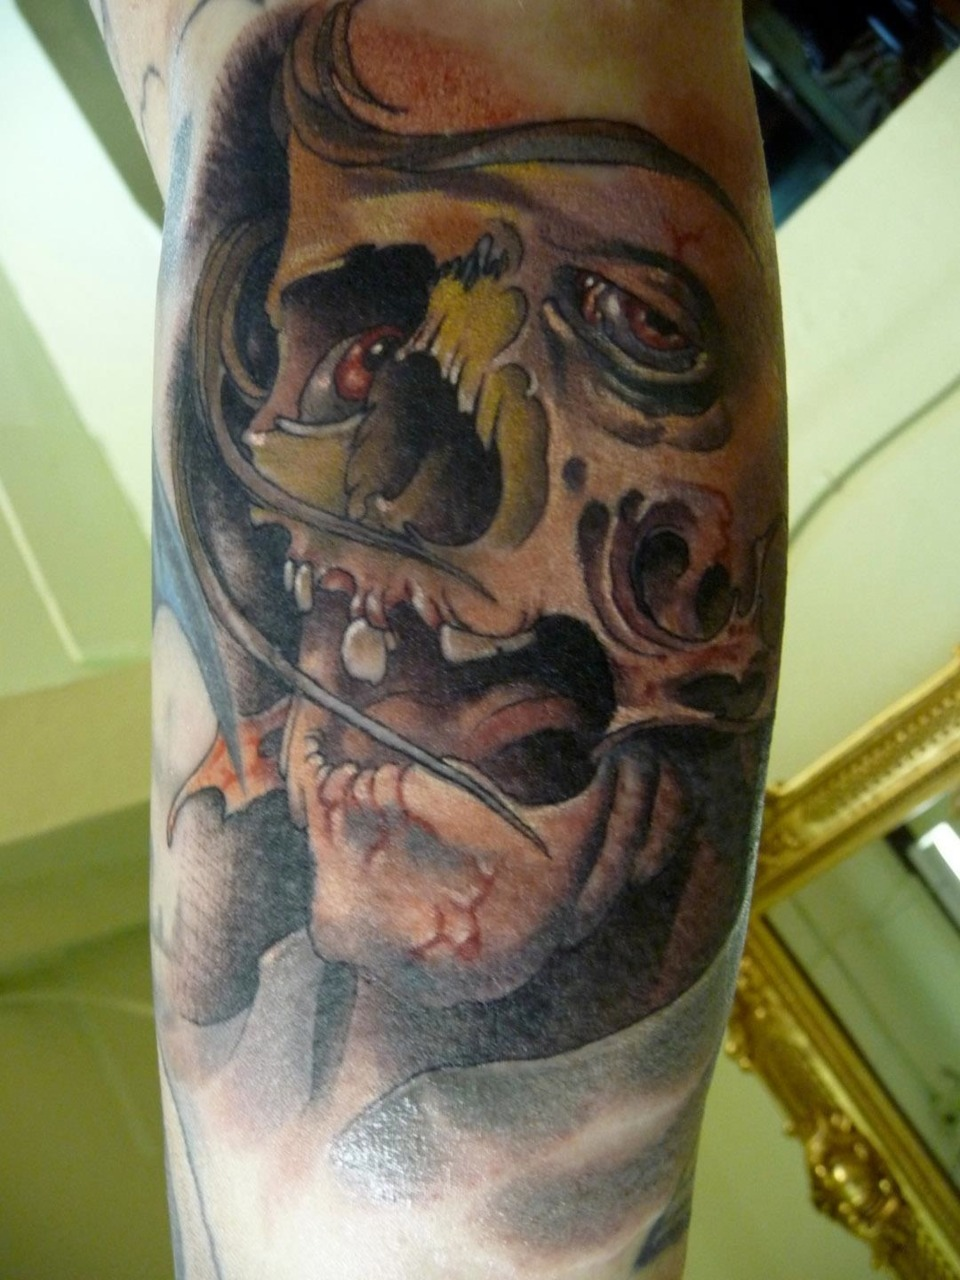 Tattoo By Damon Conklin. Super Genius Tattoo.